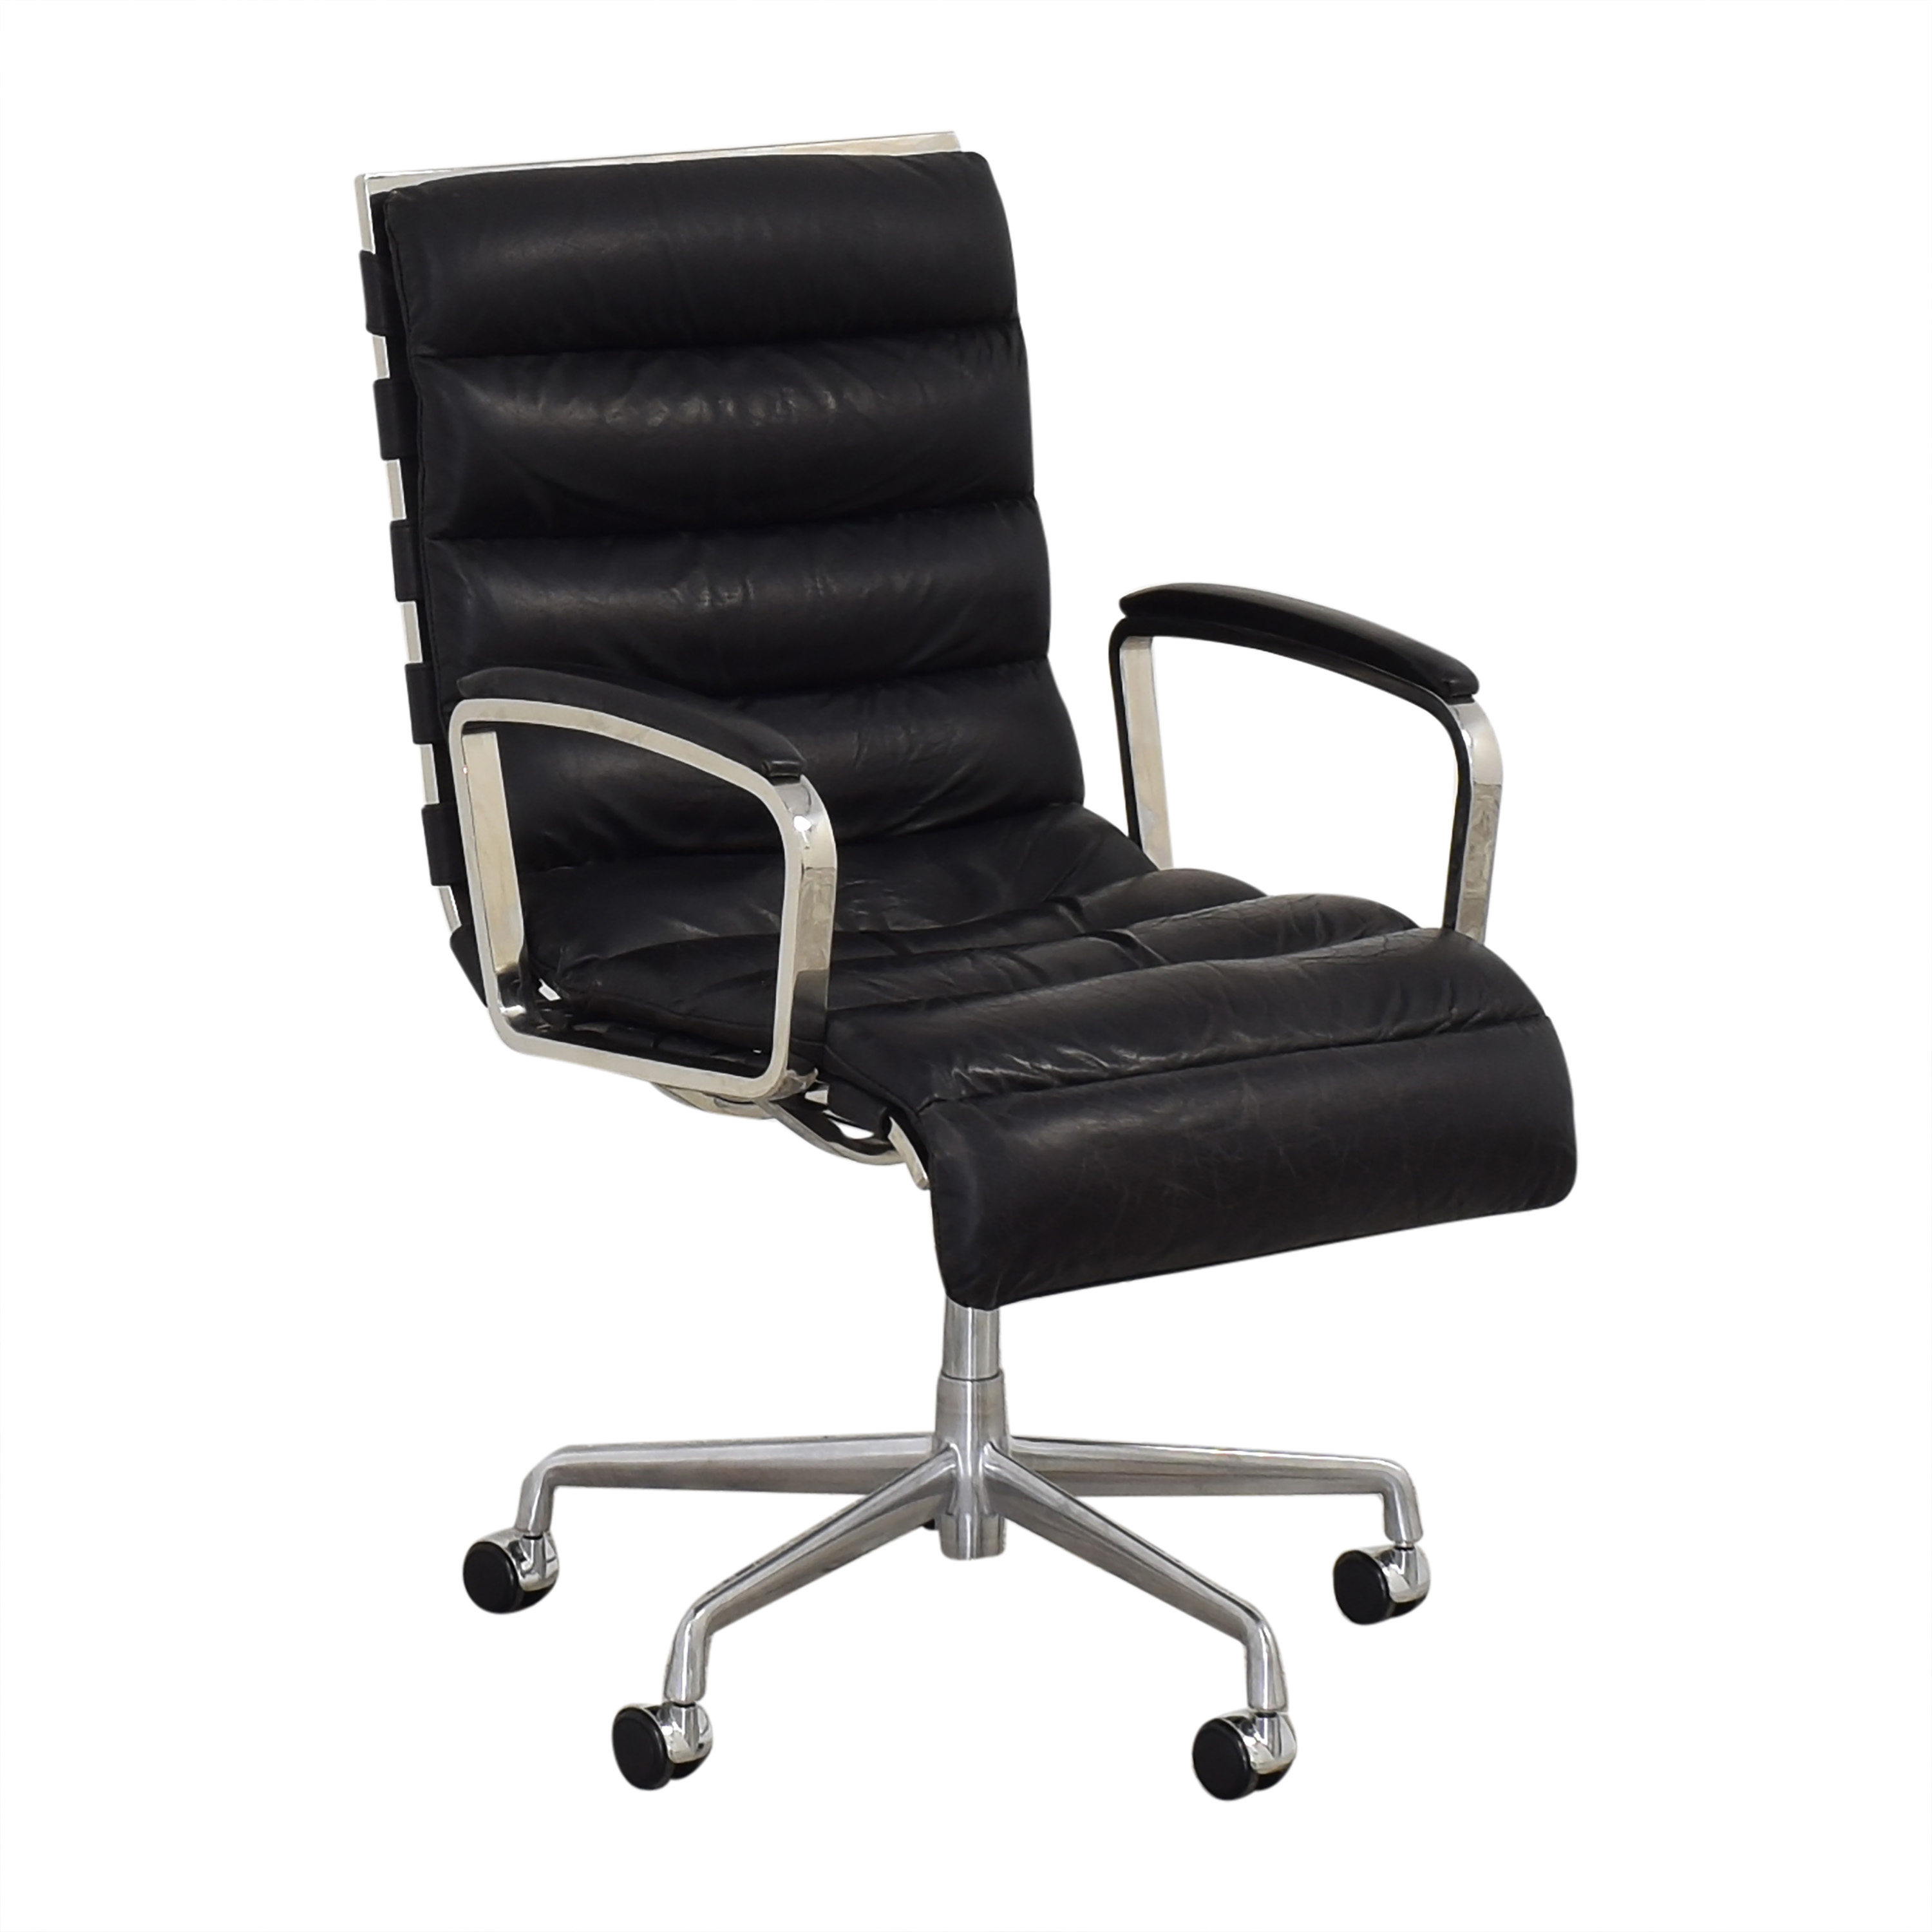 Restoration Hardware Restoration Hardware Oviedo Desk Chair nyc